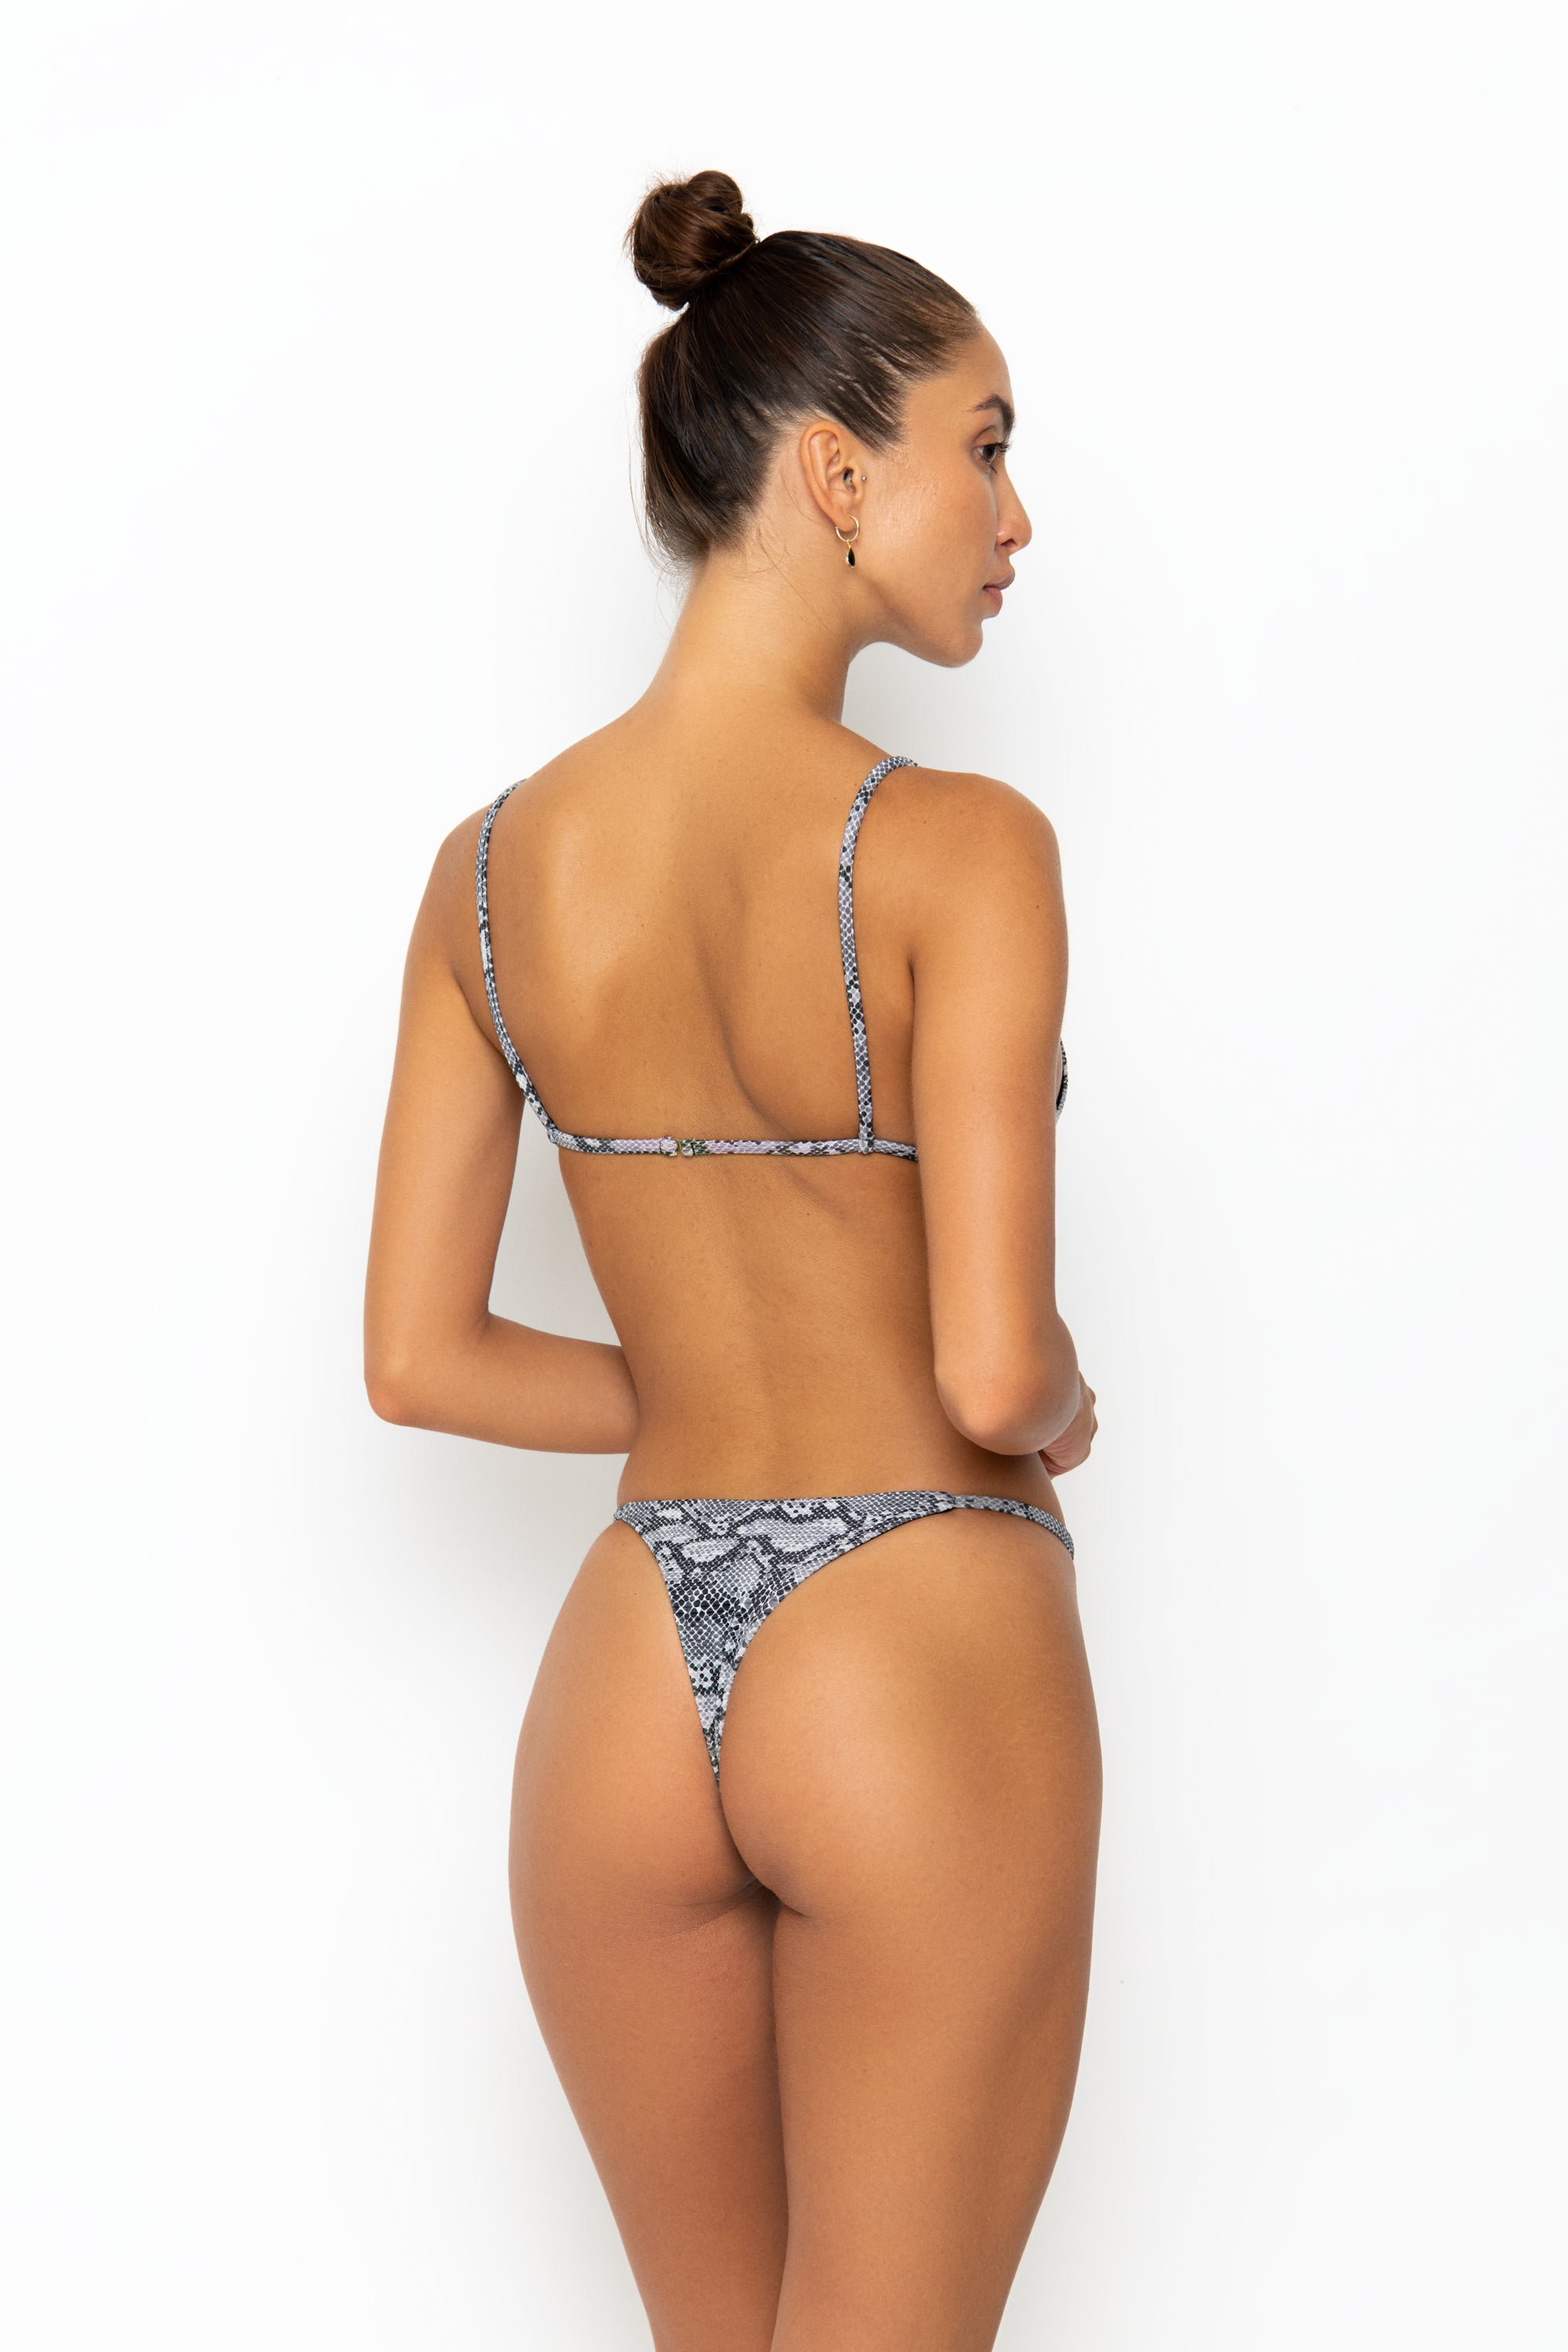 ALANI BOTTOM - BLACK/WHITE SNAKE RIB